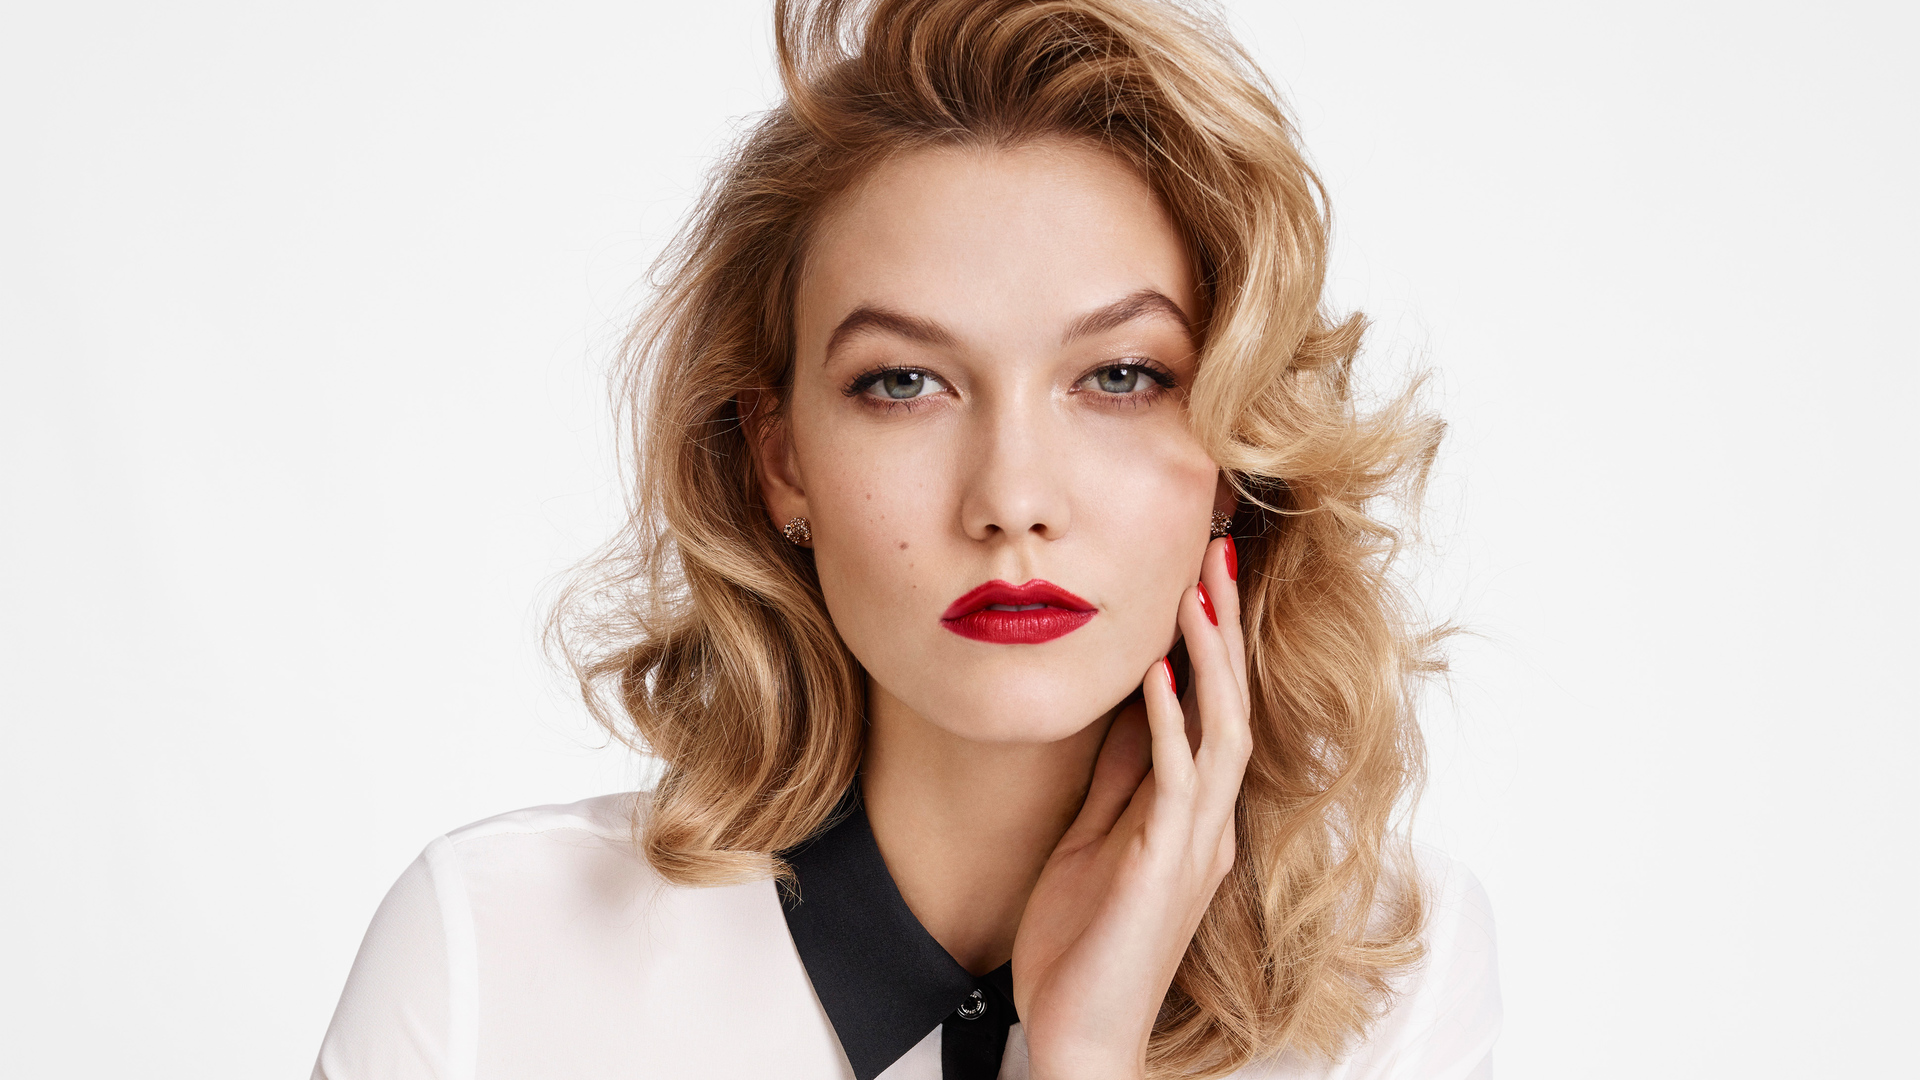 karlie kloss lipstick wallpaper 66698